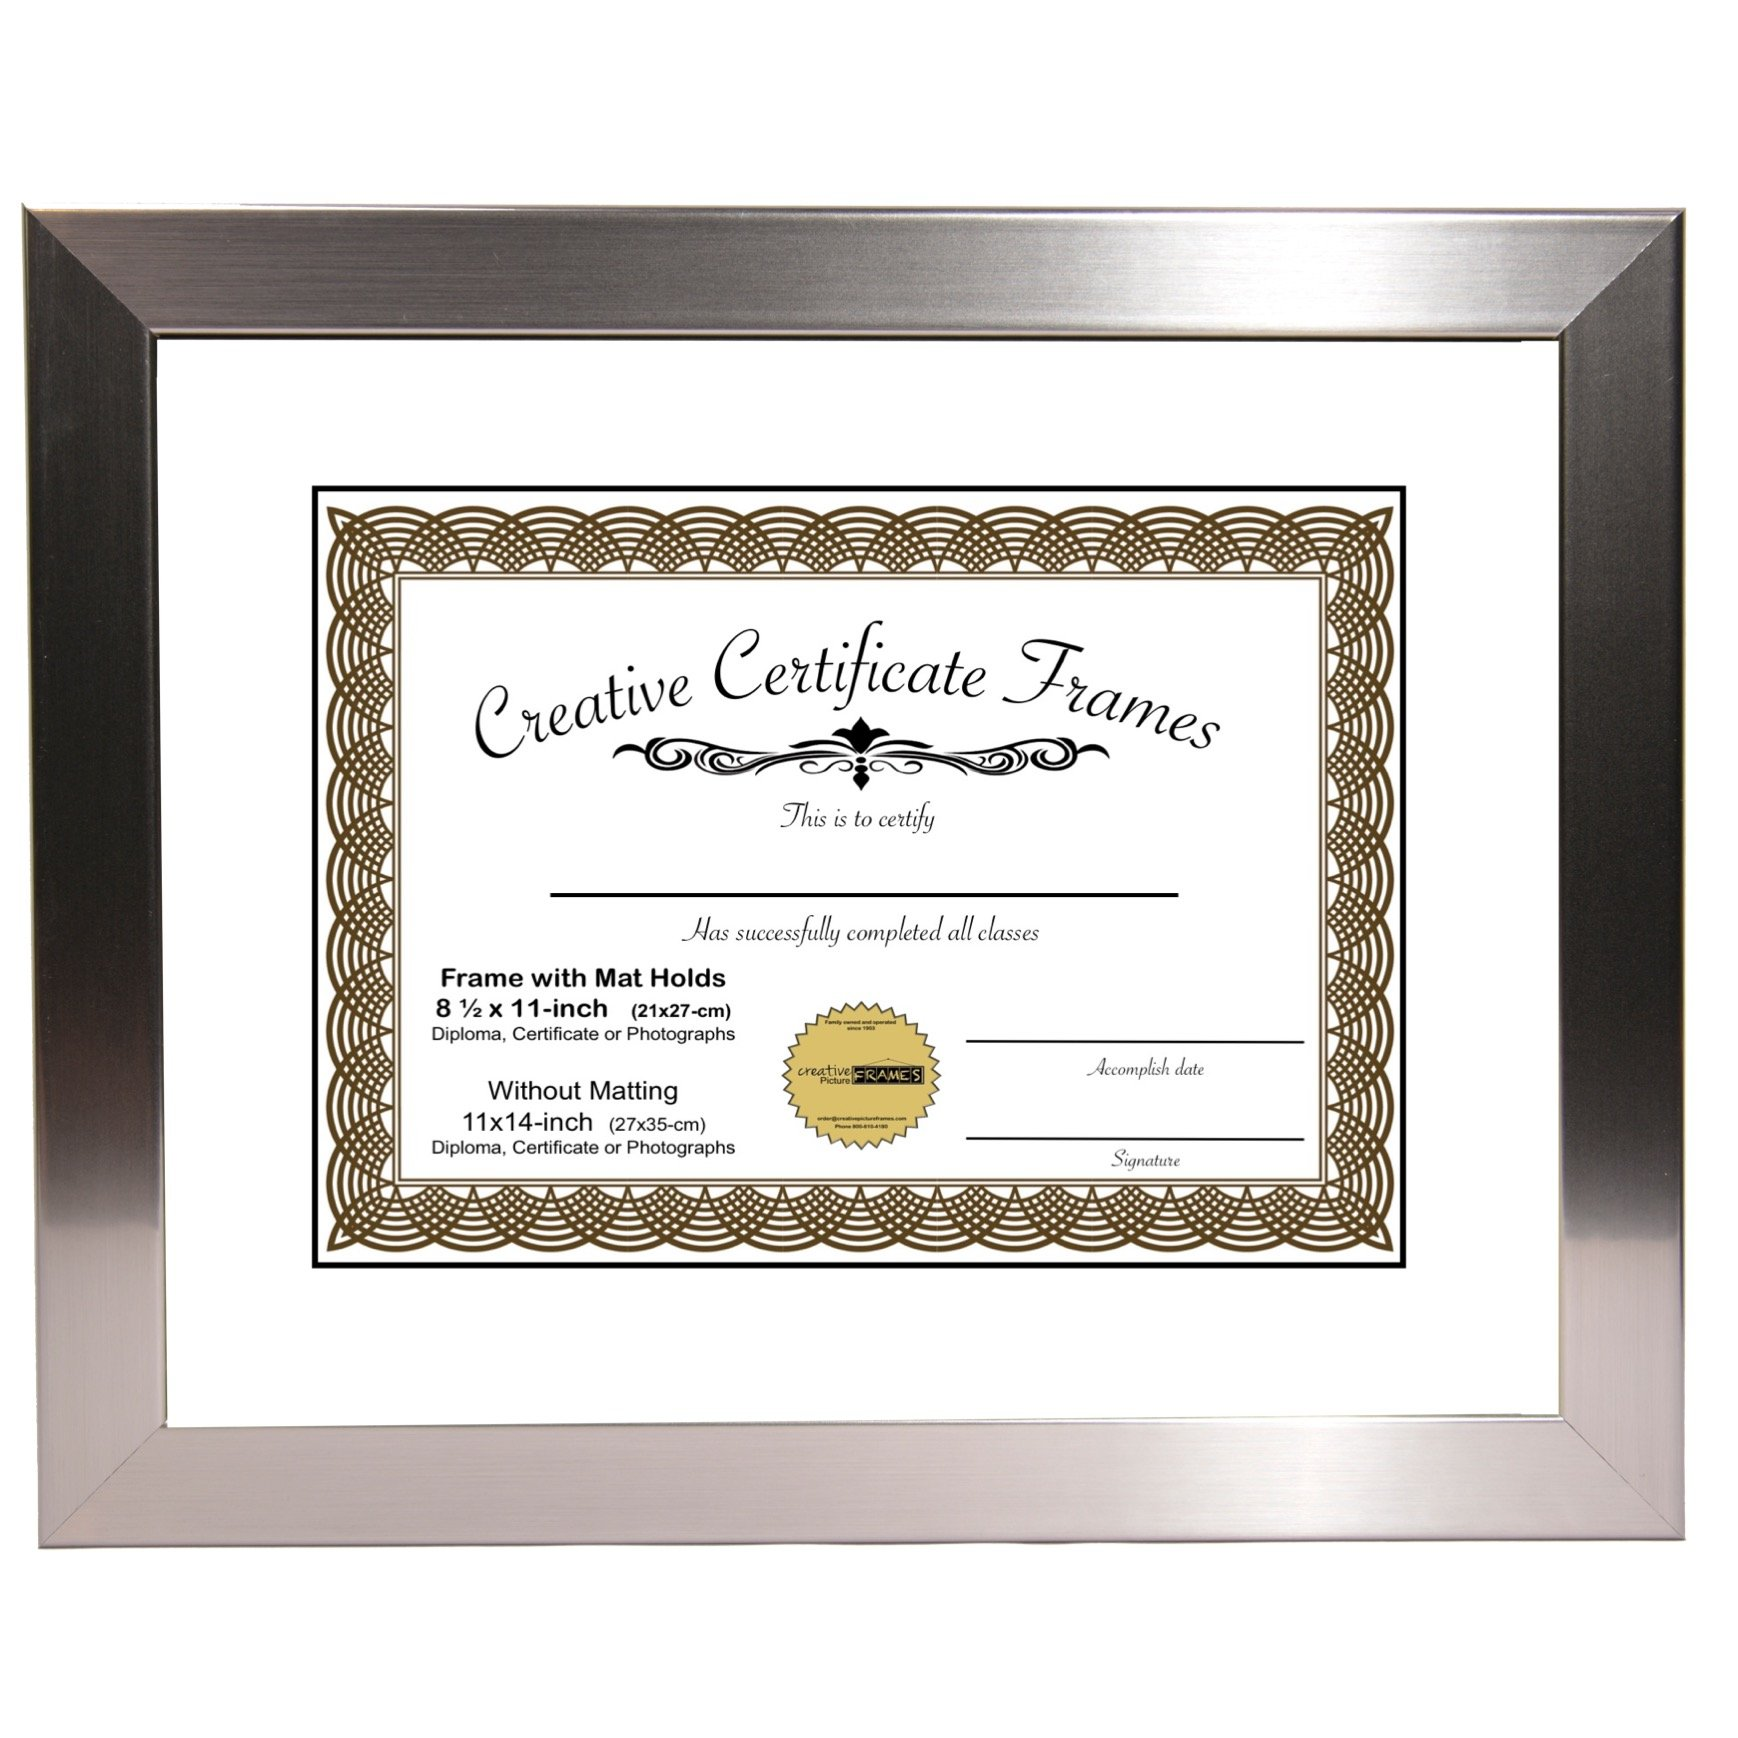 CreativePF [Y8SH-11x14ss-w] Stainless Steel Document Frame Displays 8.5'' by 11'' with Mat or 11'' by 14'' Certificate, Graduation, University, Diploma Frames with Stand & Wall Hanger (Pack of 1)